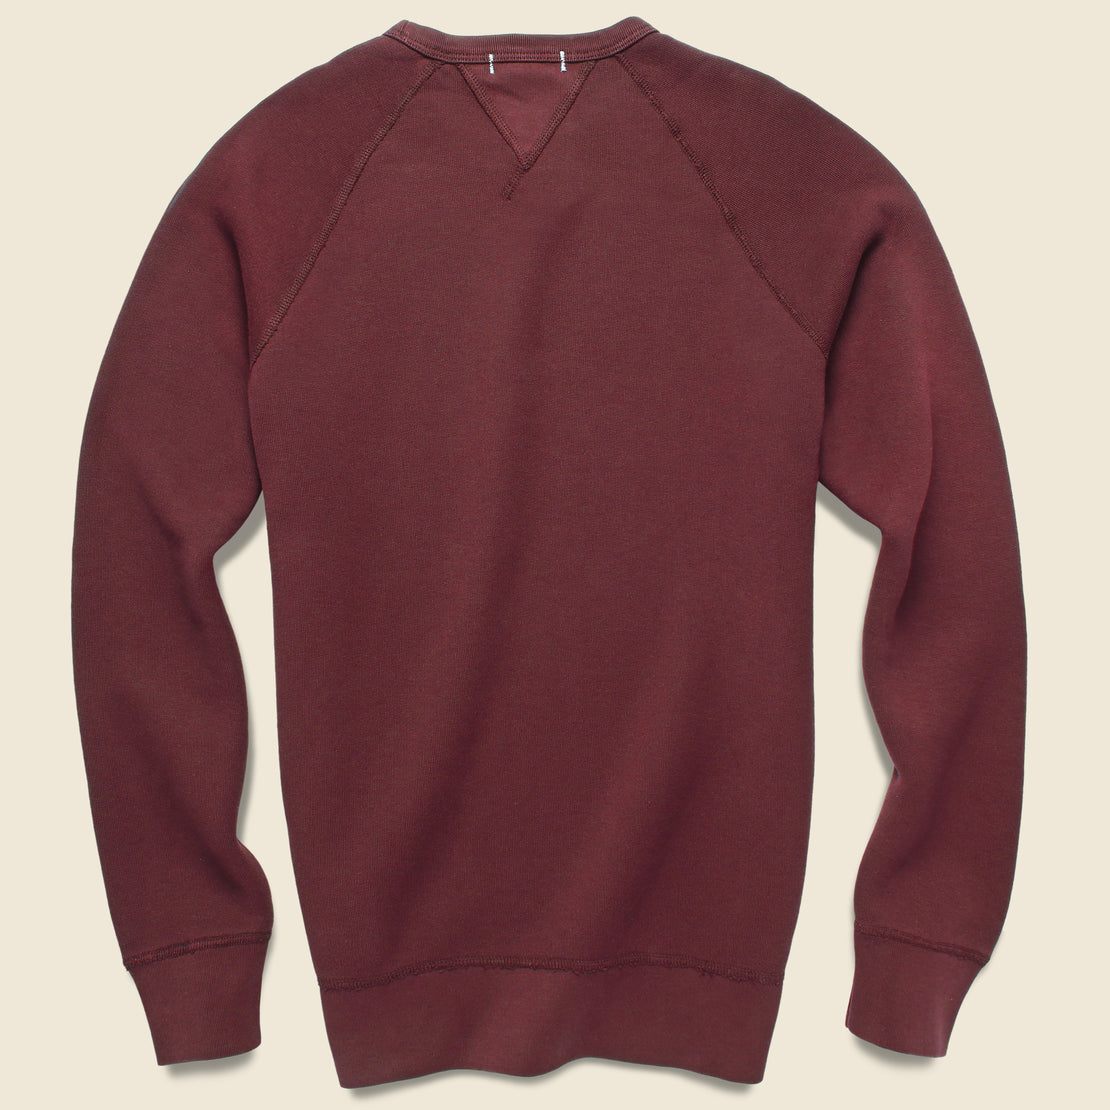 French Terry Sweatshirt - Bordeaux